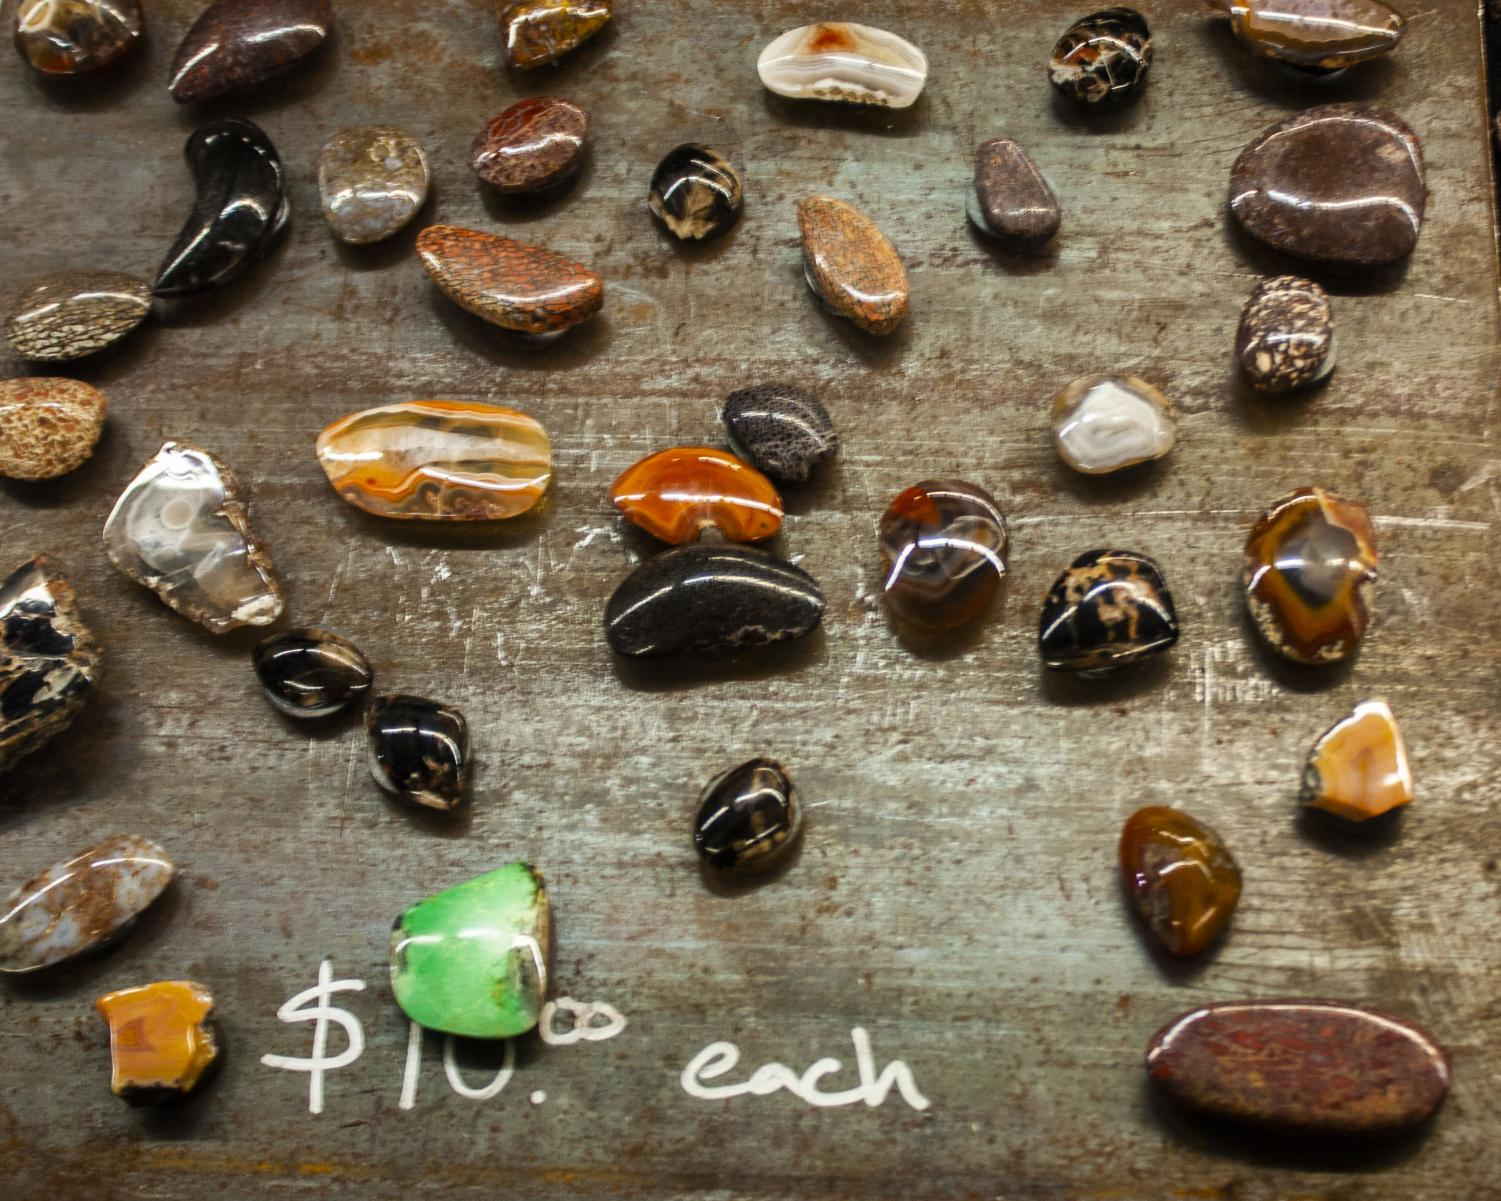 These+agates+and+stones+were+being+sold+as+refrigerator+magnets.+